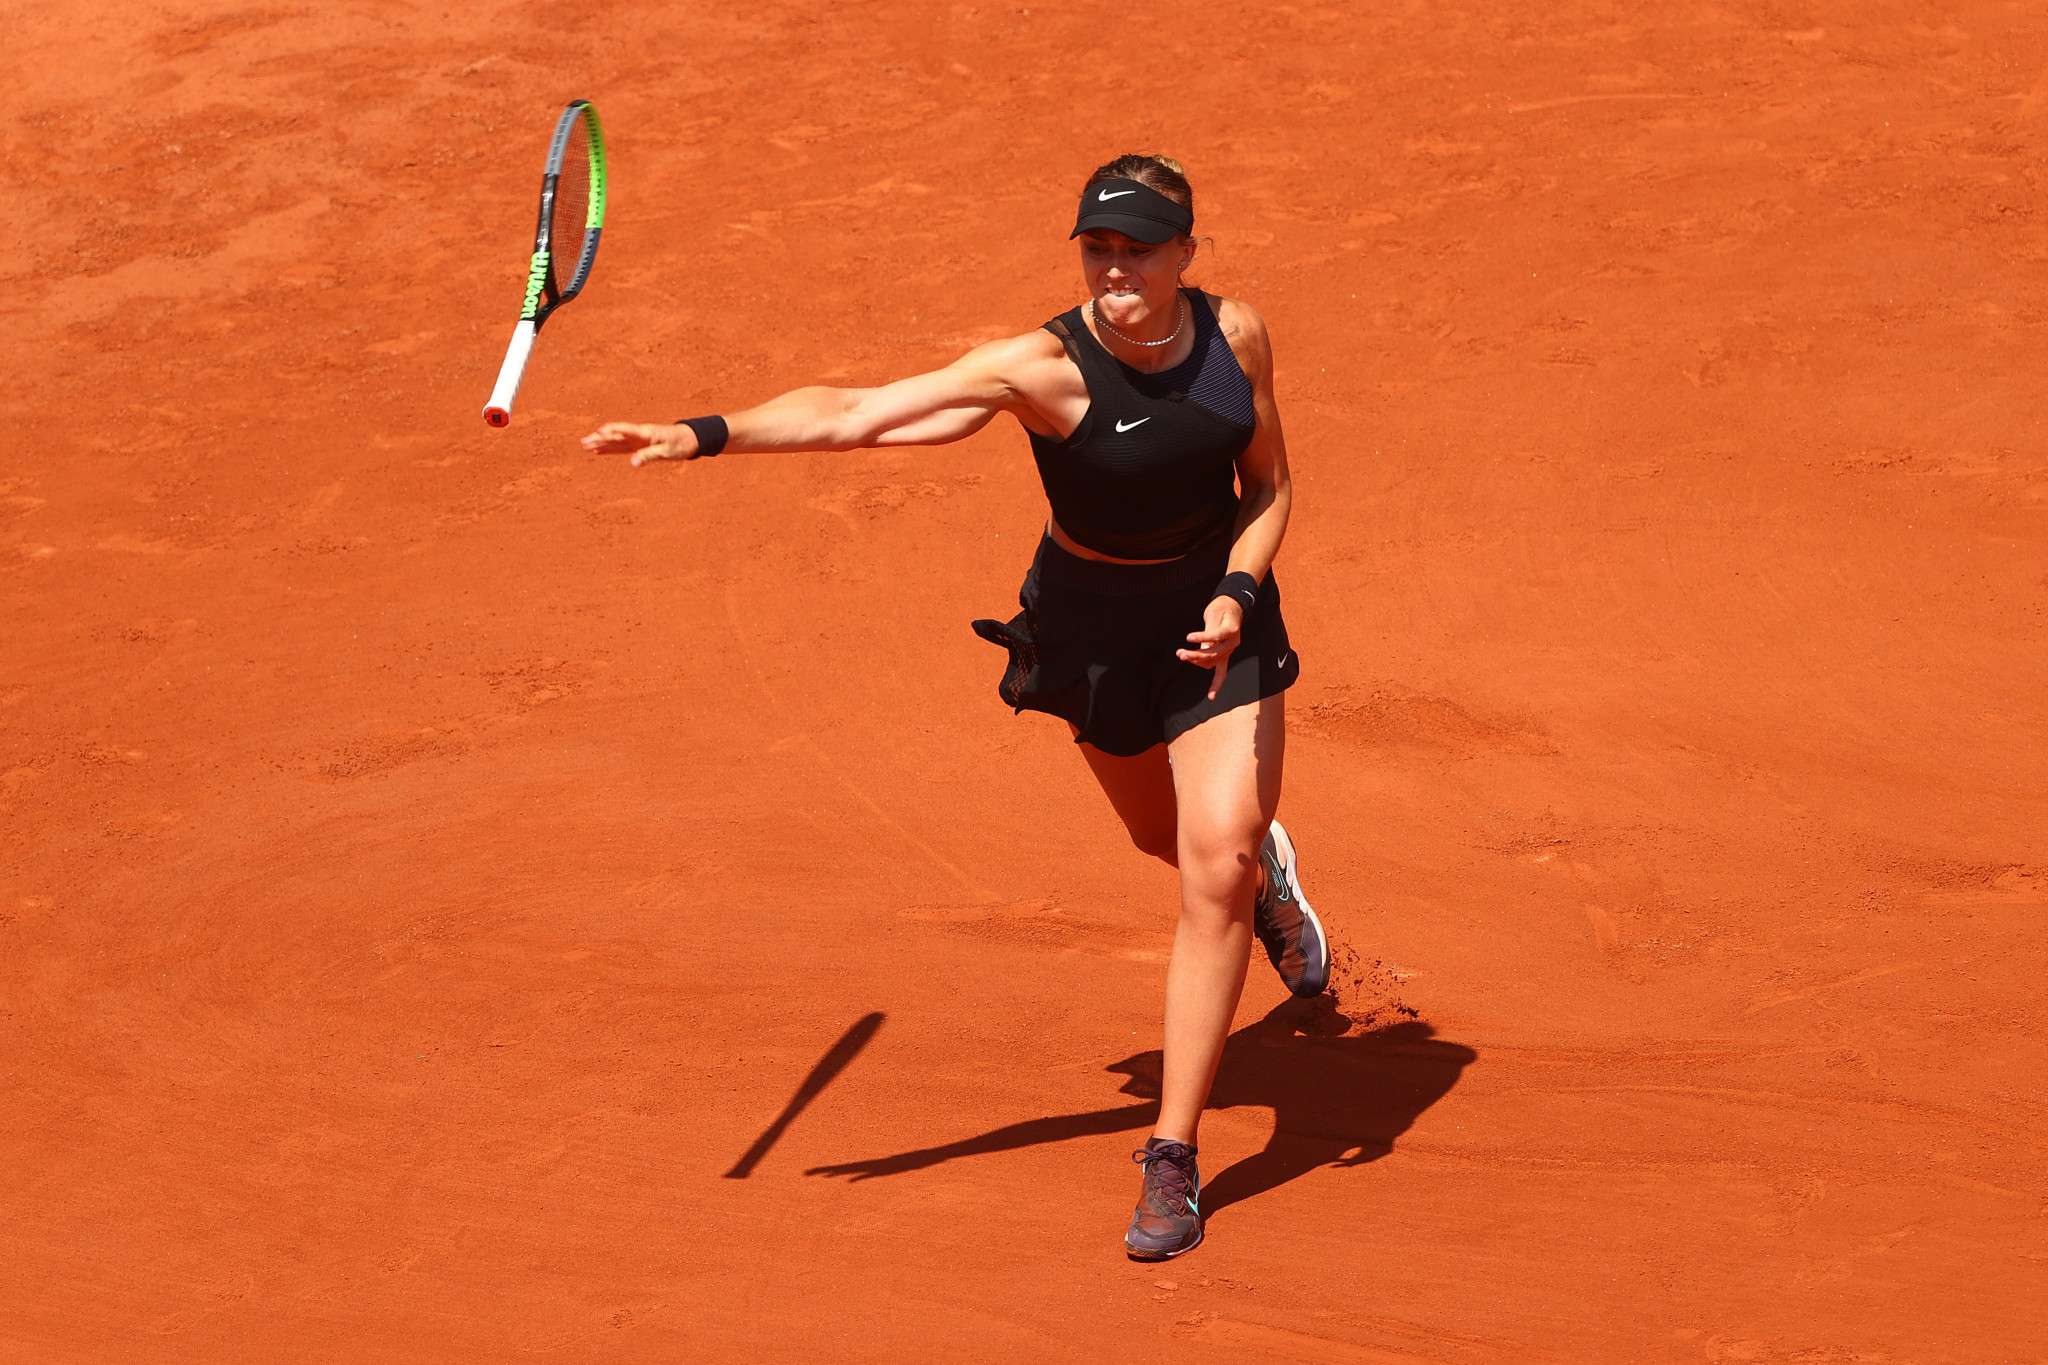 Spain's Paula Badosa loses her racket on the way to losing in the quarter-finals of the French Open, where she was upset by Tamara Zidansek ©Getty Images